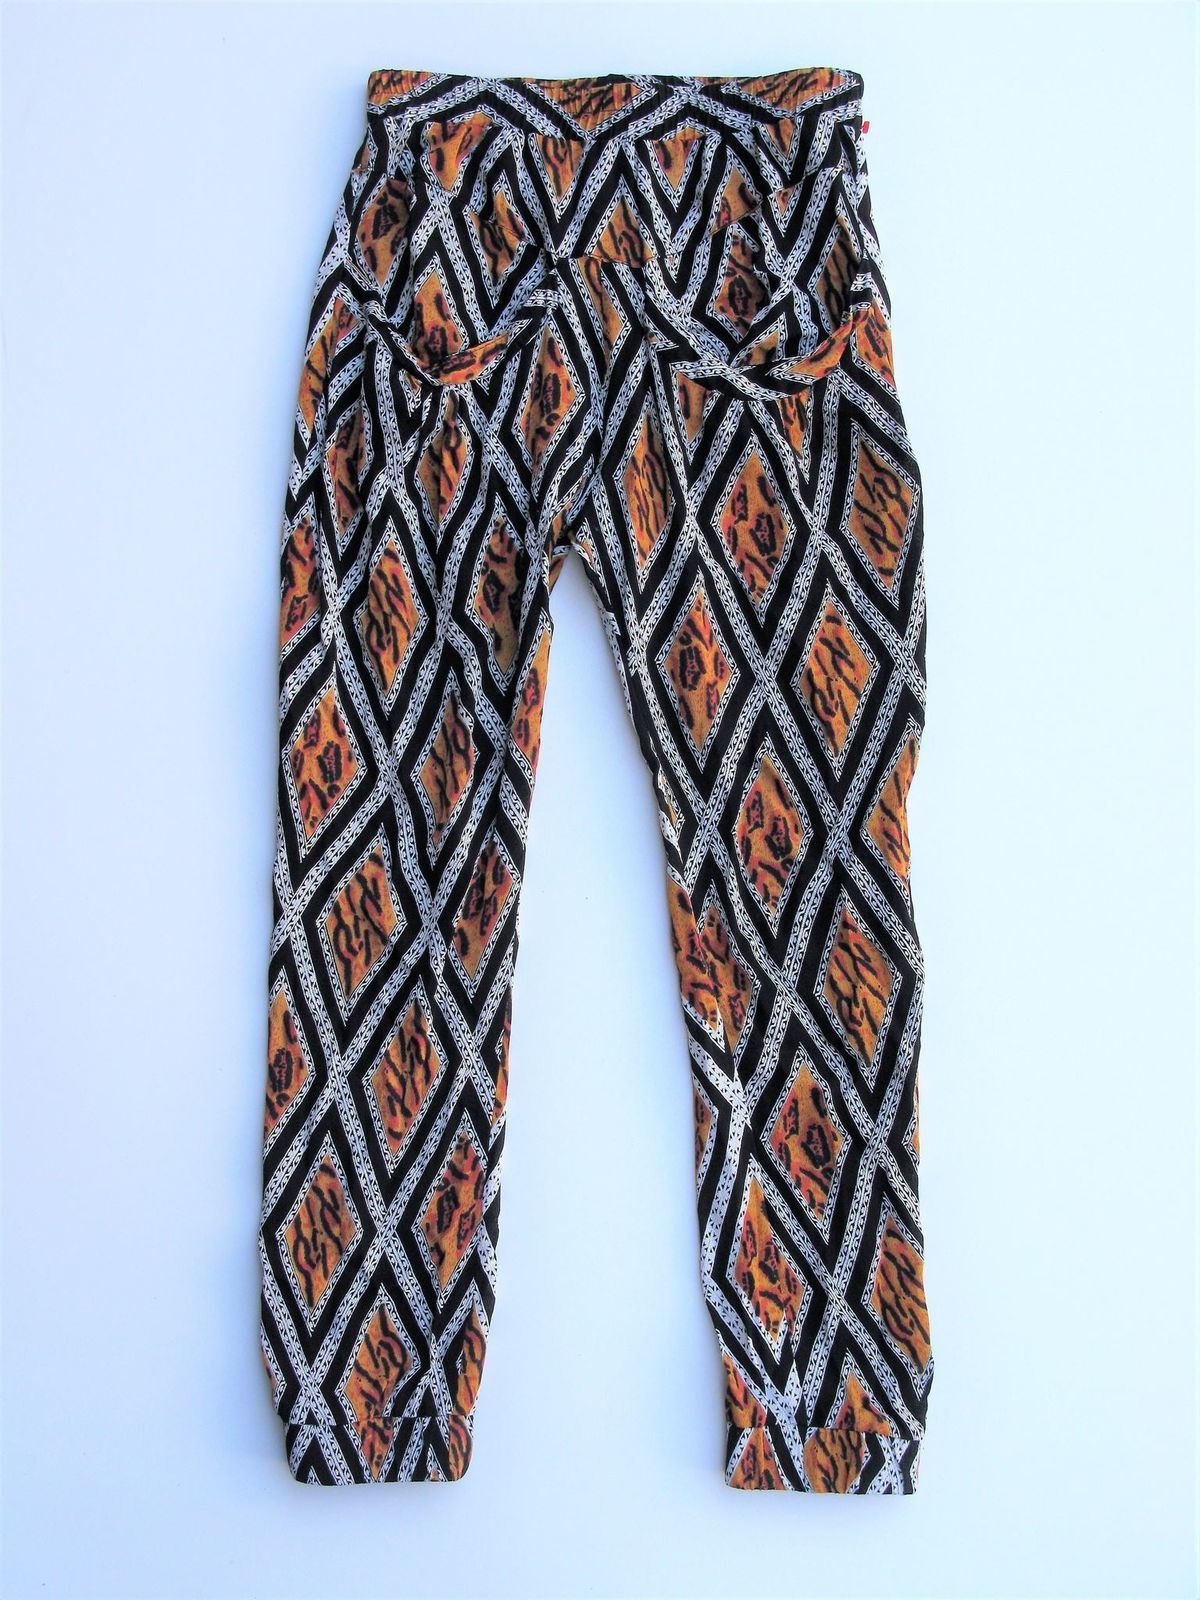 Pants Joggers Flynn Skye Perfect Abstract Printed 1 XS $145 MSRP